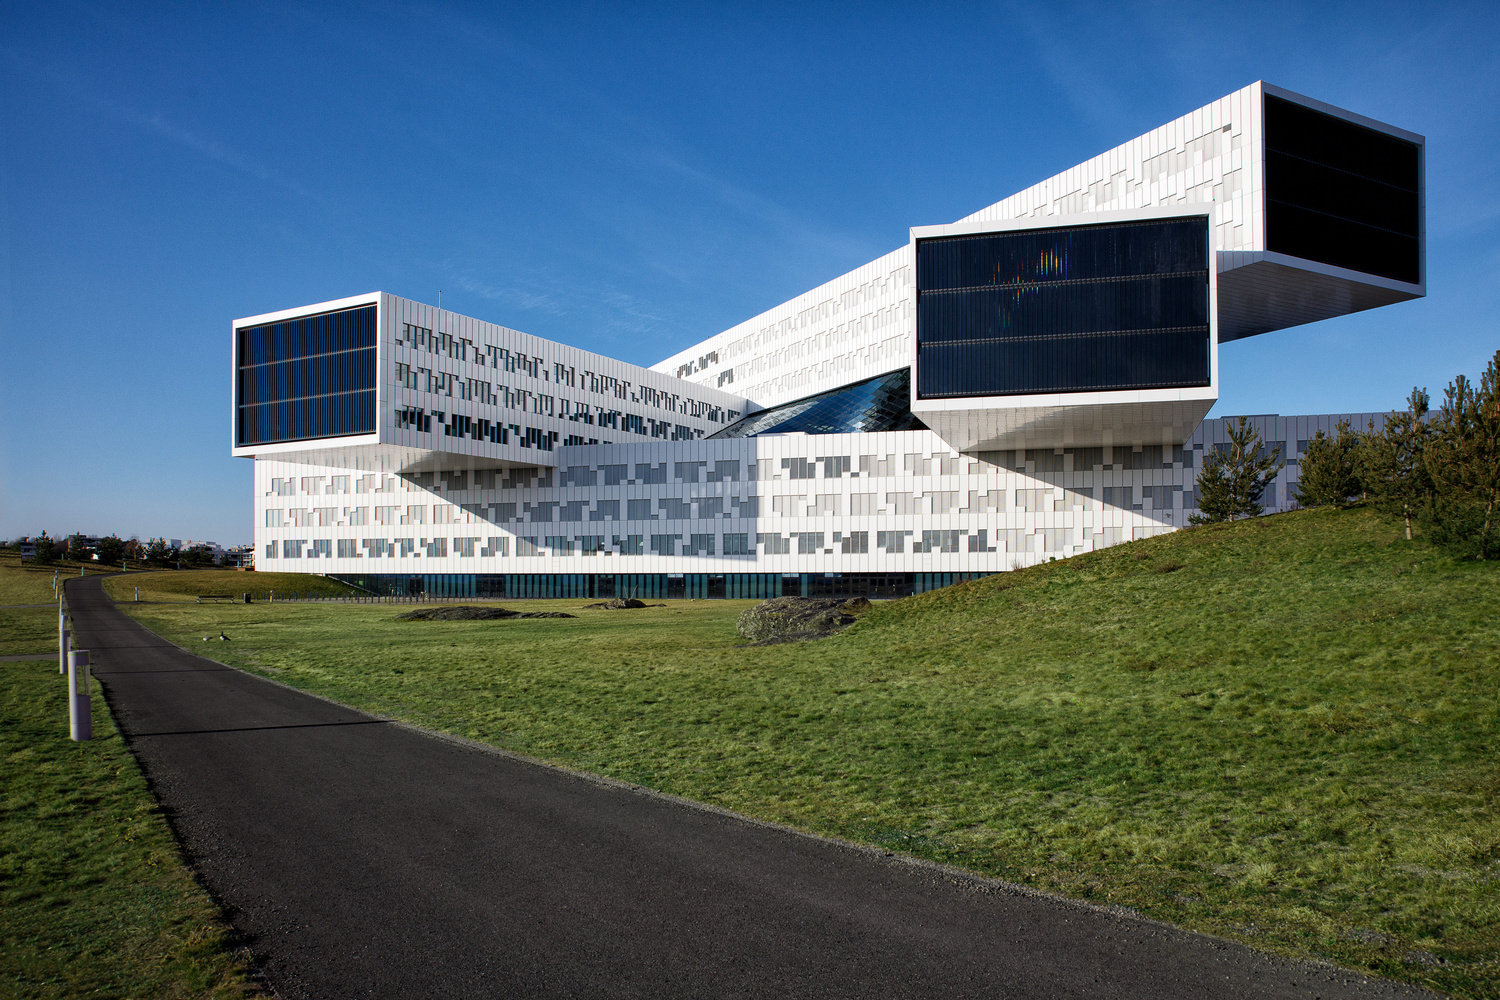 Statoil Regional Offices Building by Miguel Santos Novoa